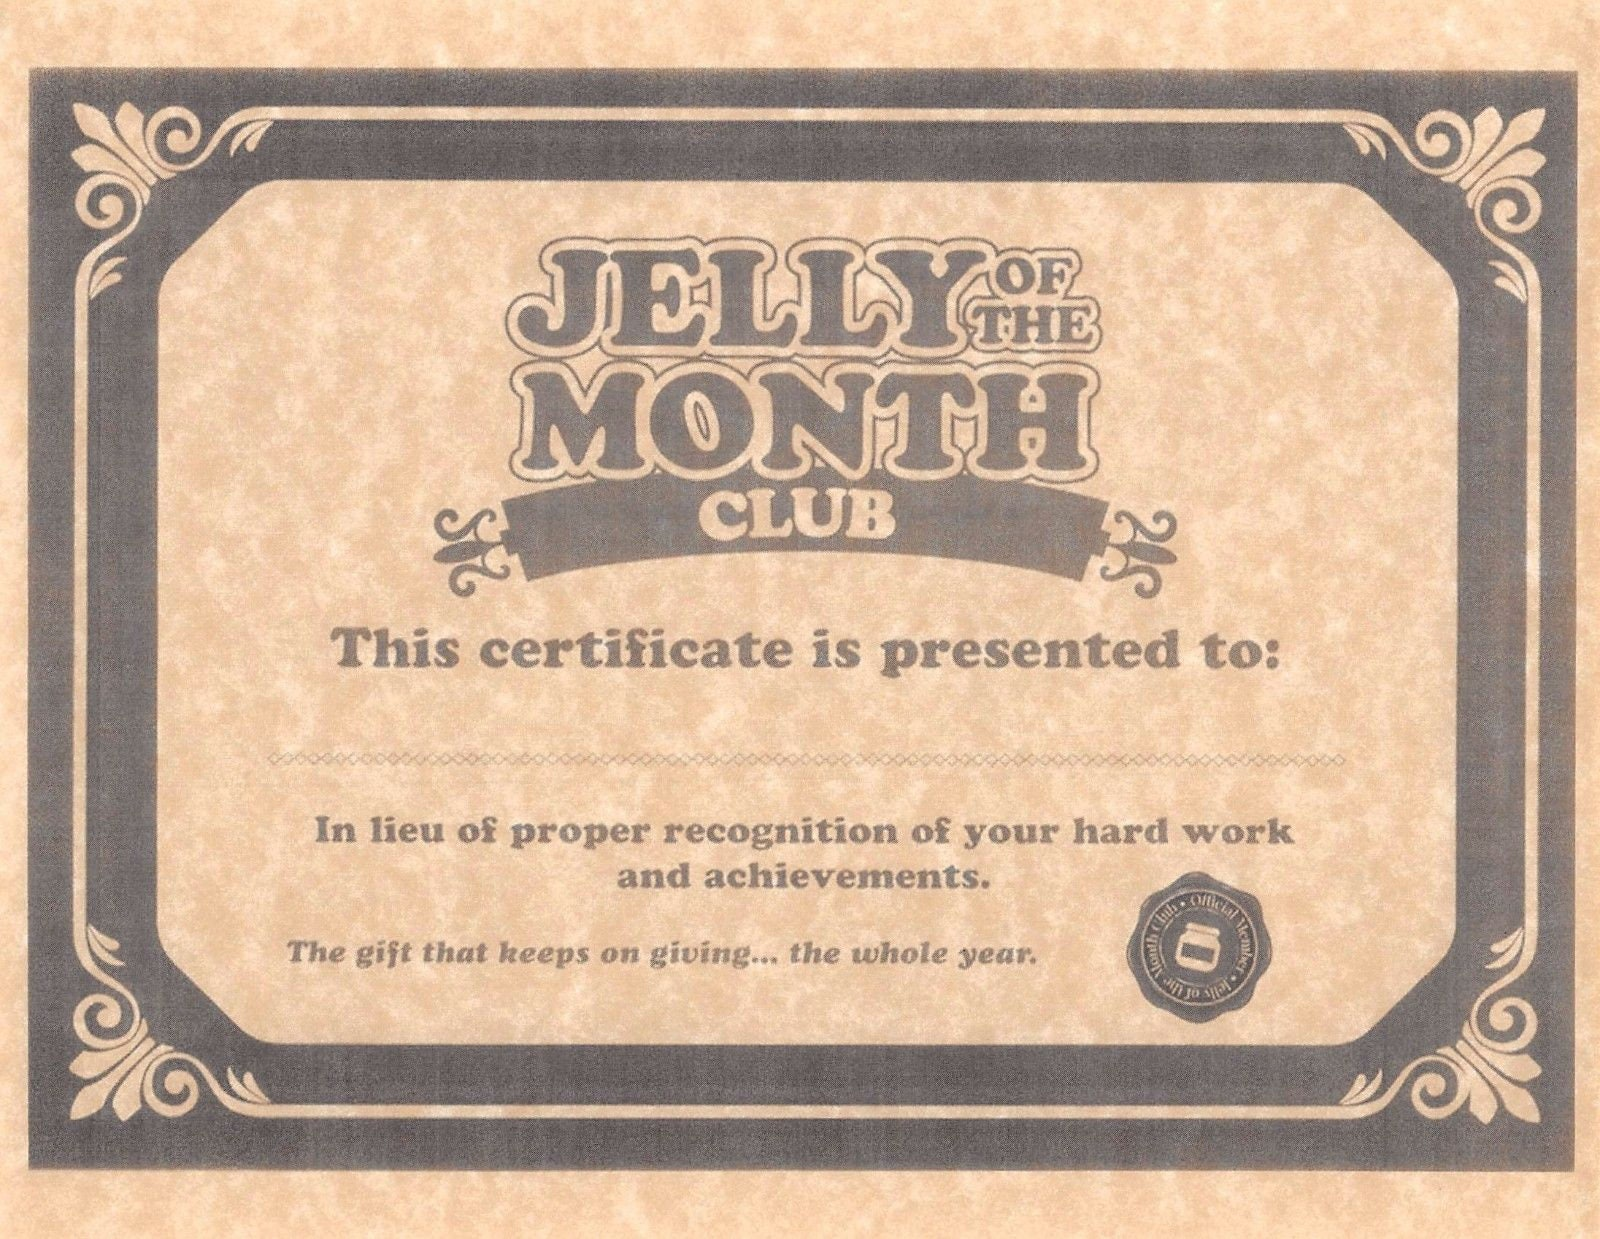 National lampoons christmas vacation jelly of the description national lampoons christmas vacation jelly of the month club certificate 1betcityfo Images